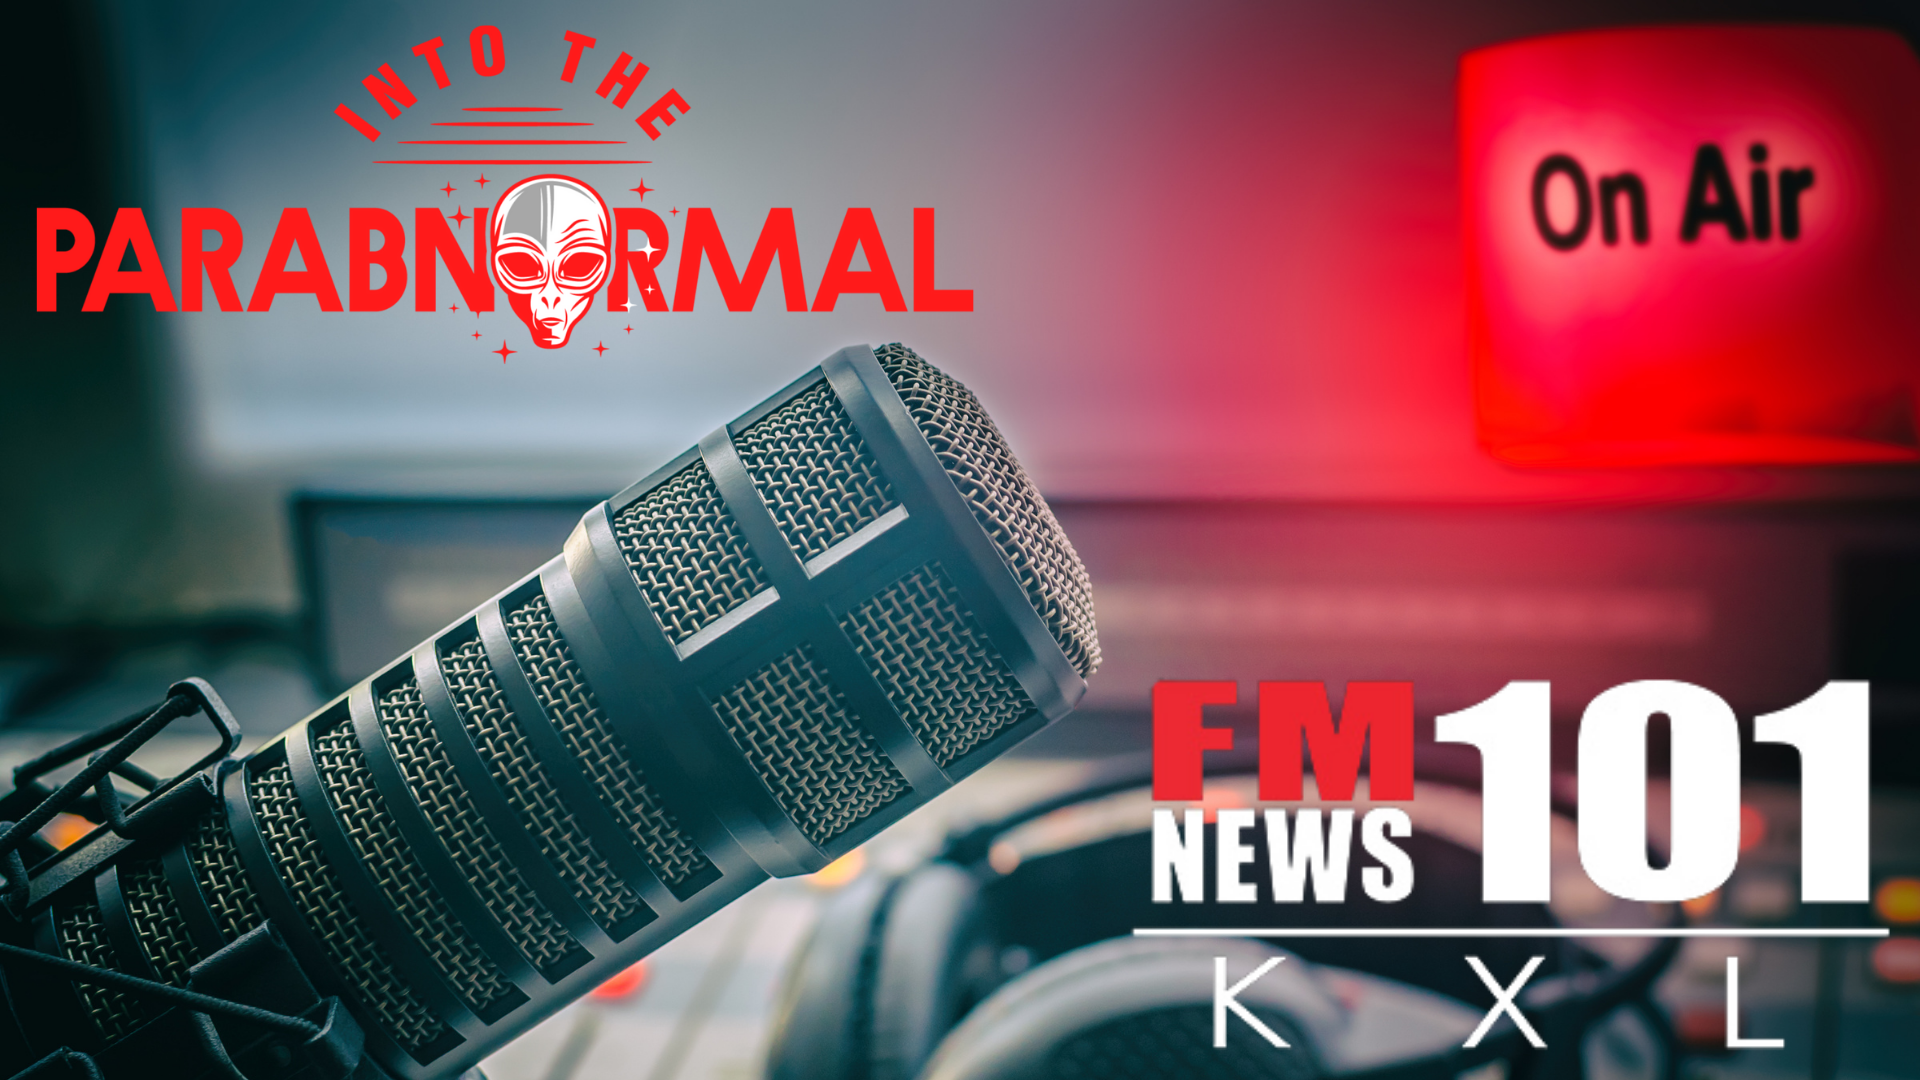 """Thumbnail for The Mothership Has Landed: FM News 101 KXL Adds """"Into The Parabnormal"""""""